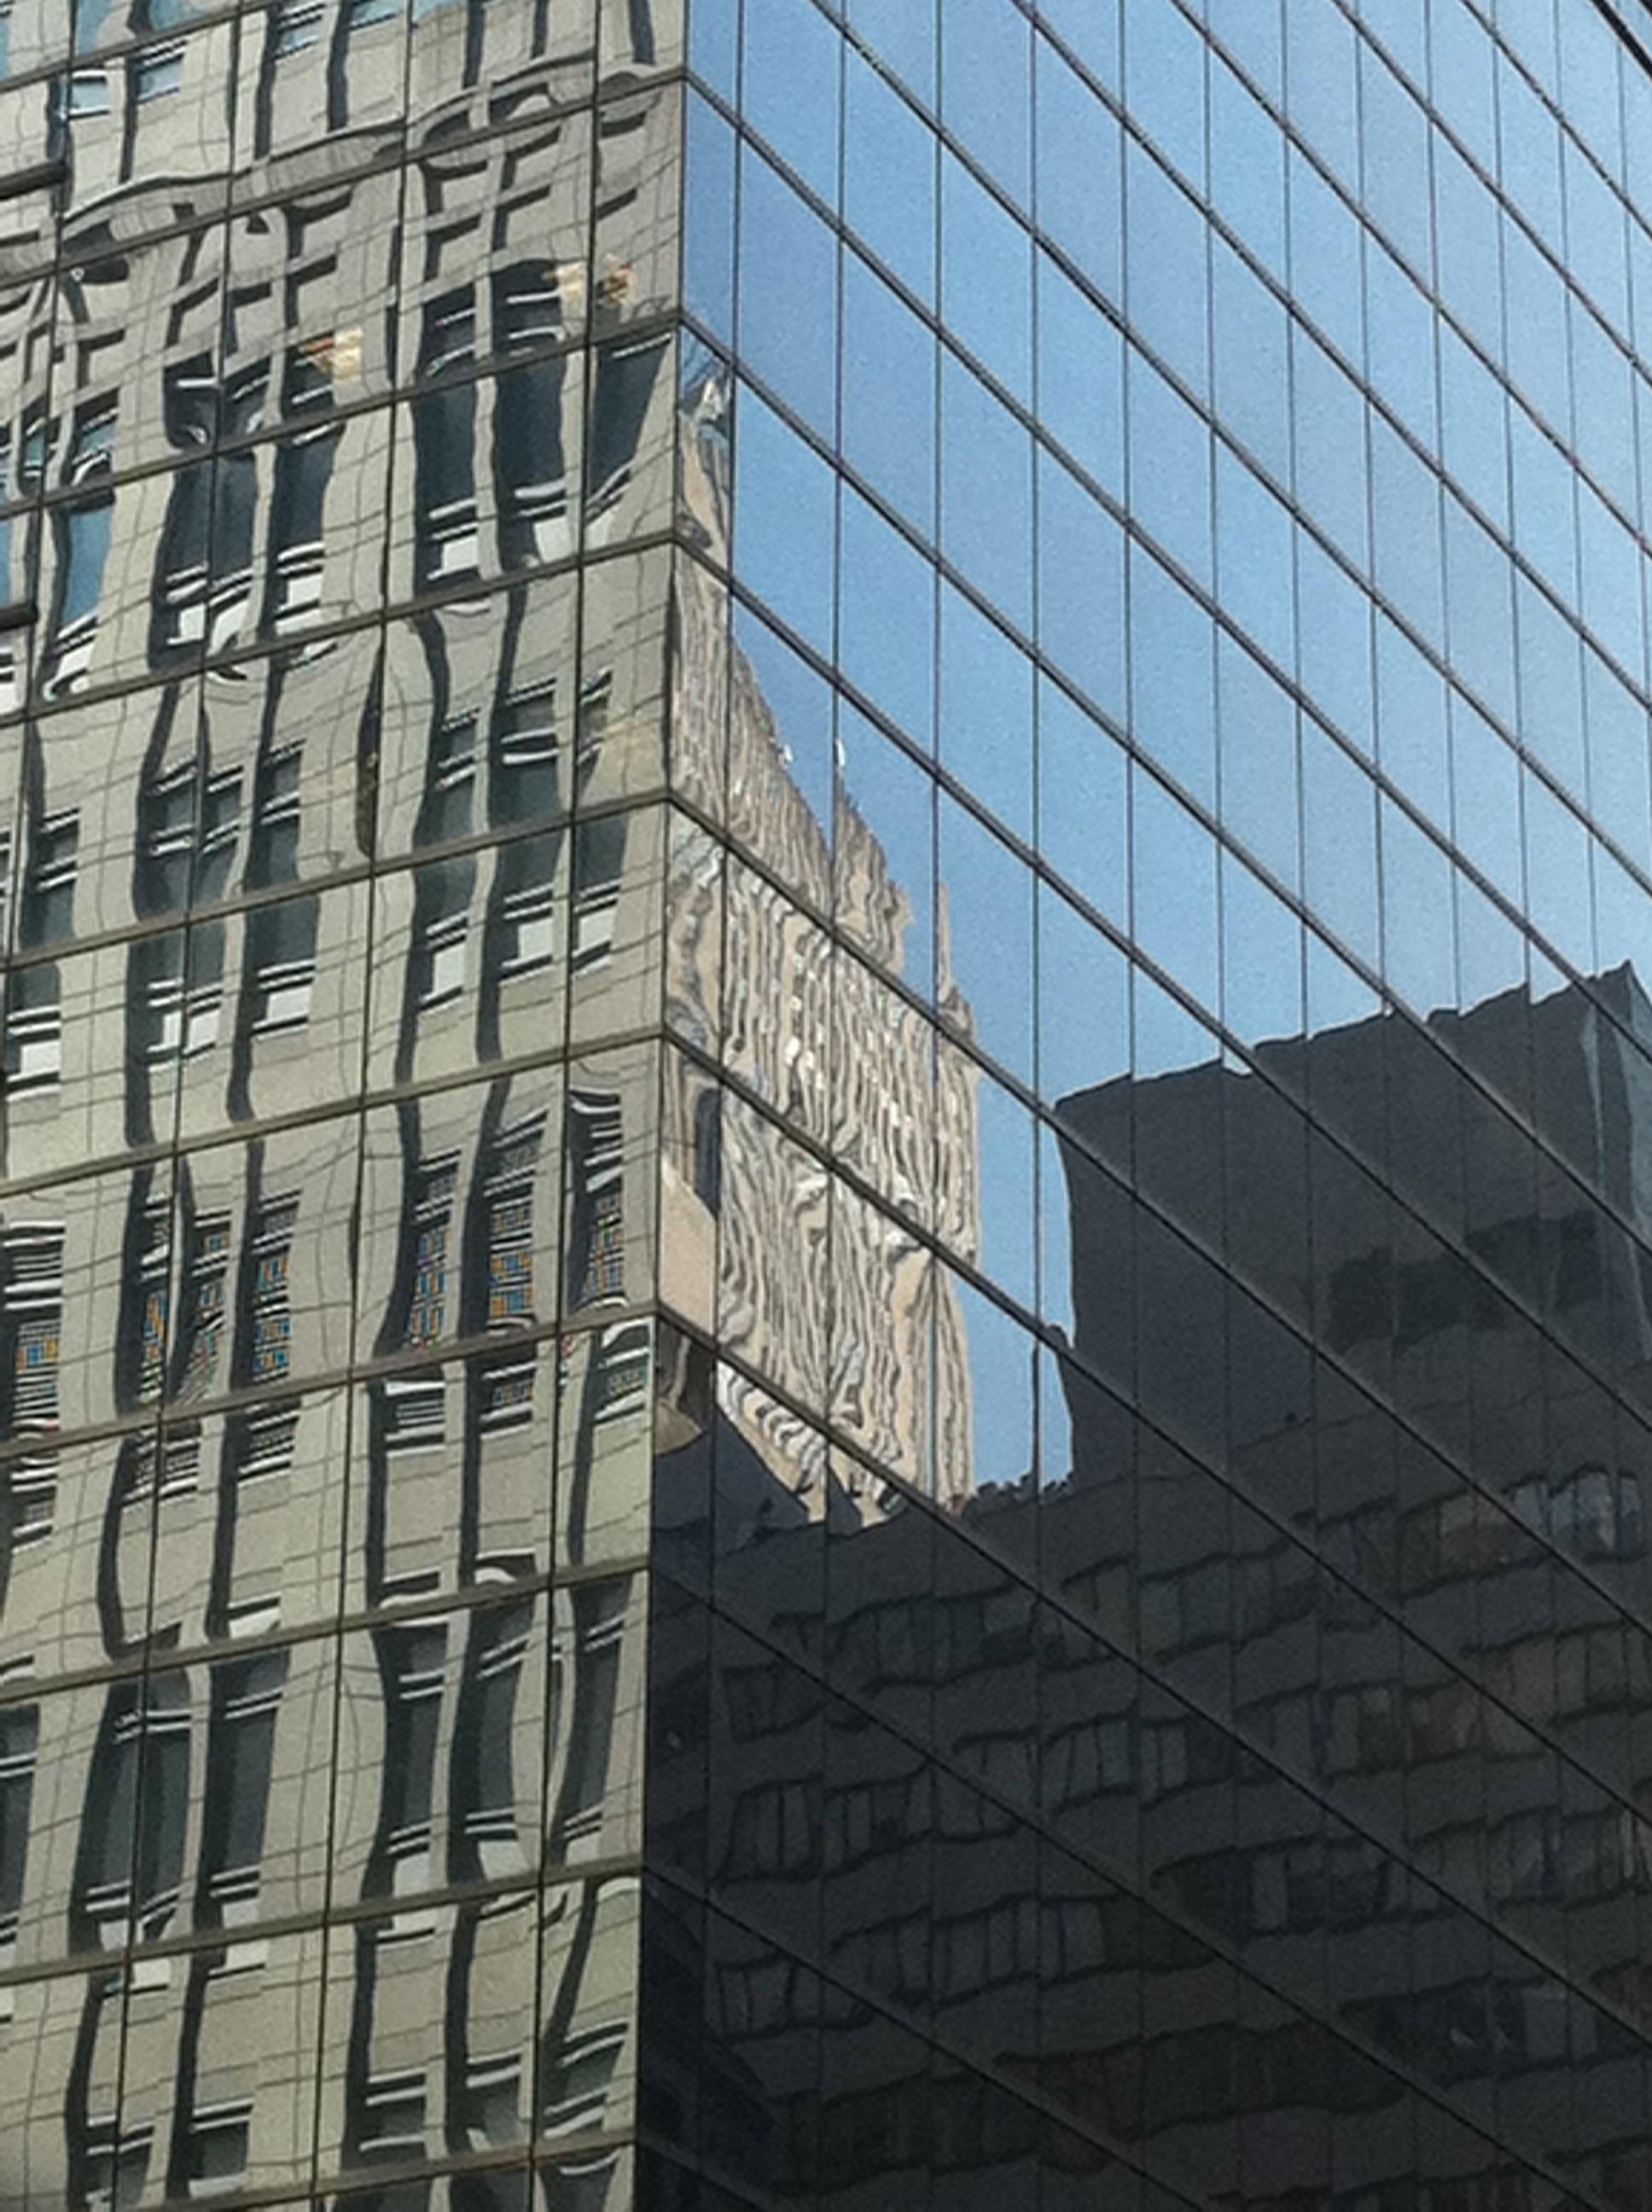 a building reflects on the glass building's exterior